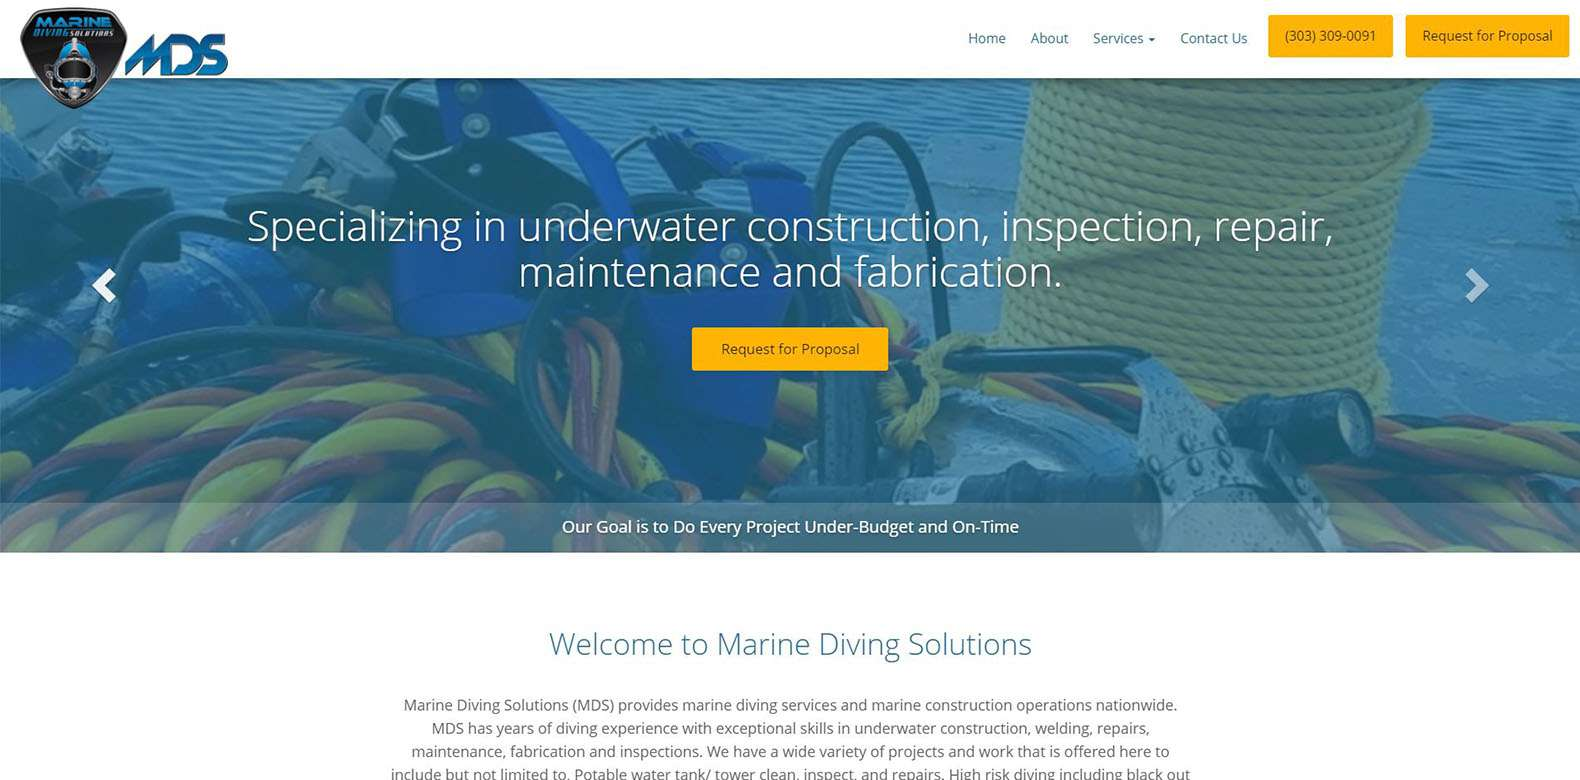 marine-diving-solutions-denver-website-designs